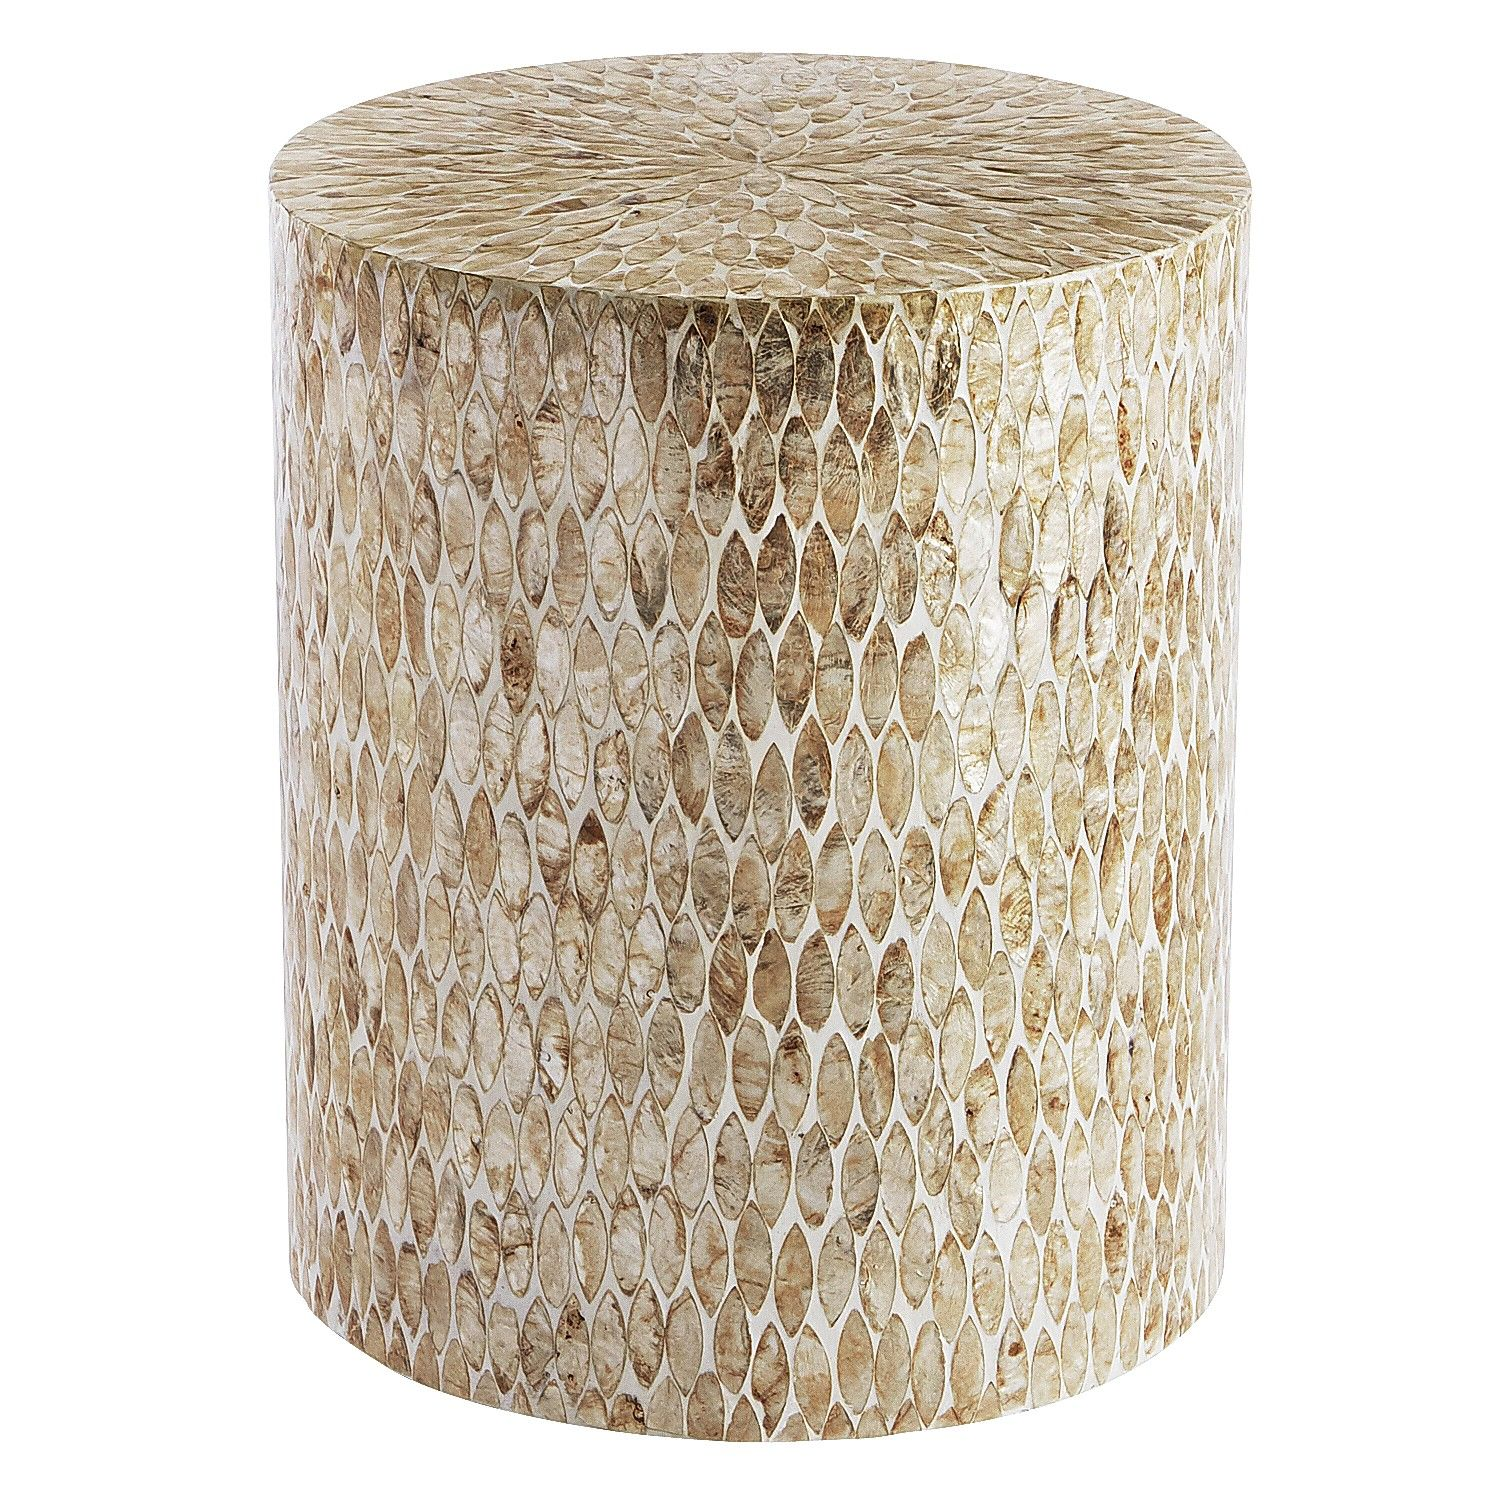 capiz round drum accent table pier imports marble tables gold threshold teal bedside legs west elm coupon code skirts decorator small brass coffee glass lamp white half moon